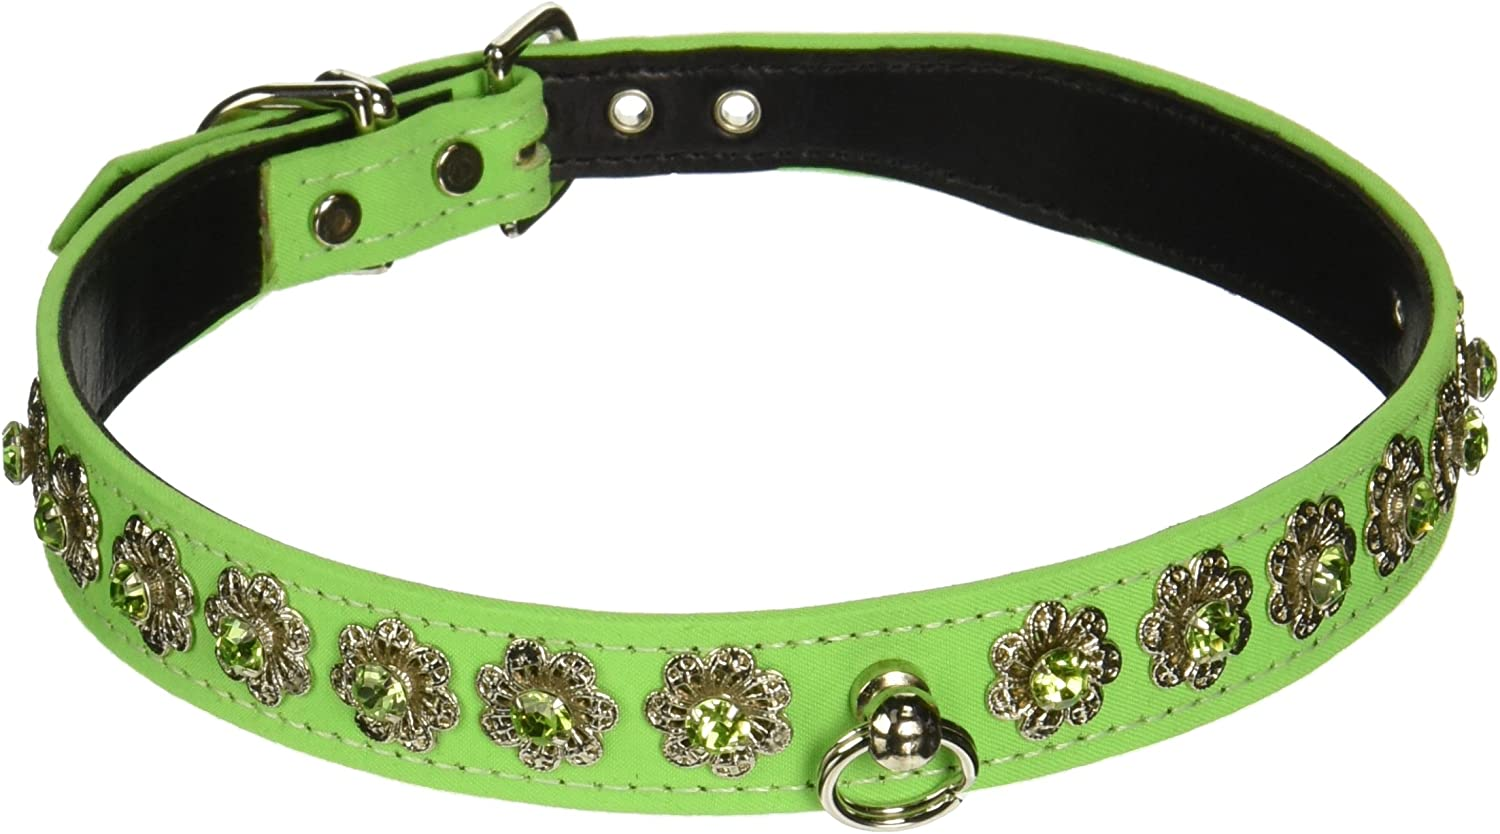 Evans Collars 3 4  Shaped Collar with Starlight Pattern, Size 20, Solid Cotton, Neon Green